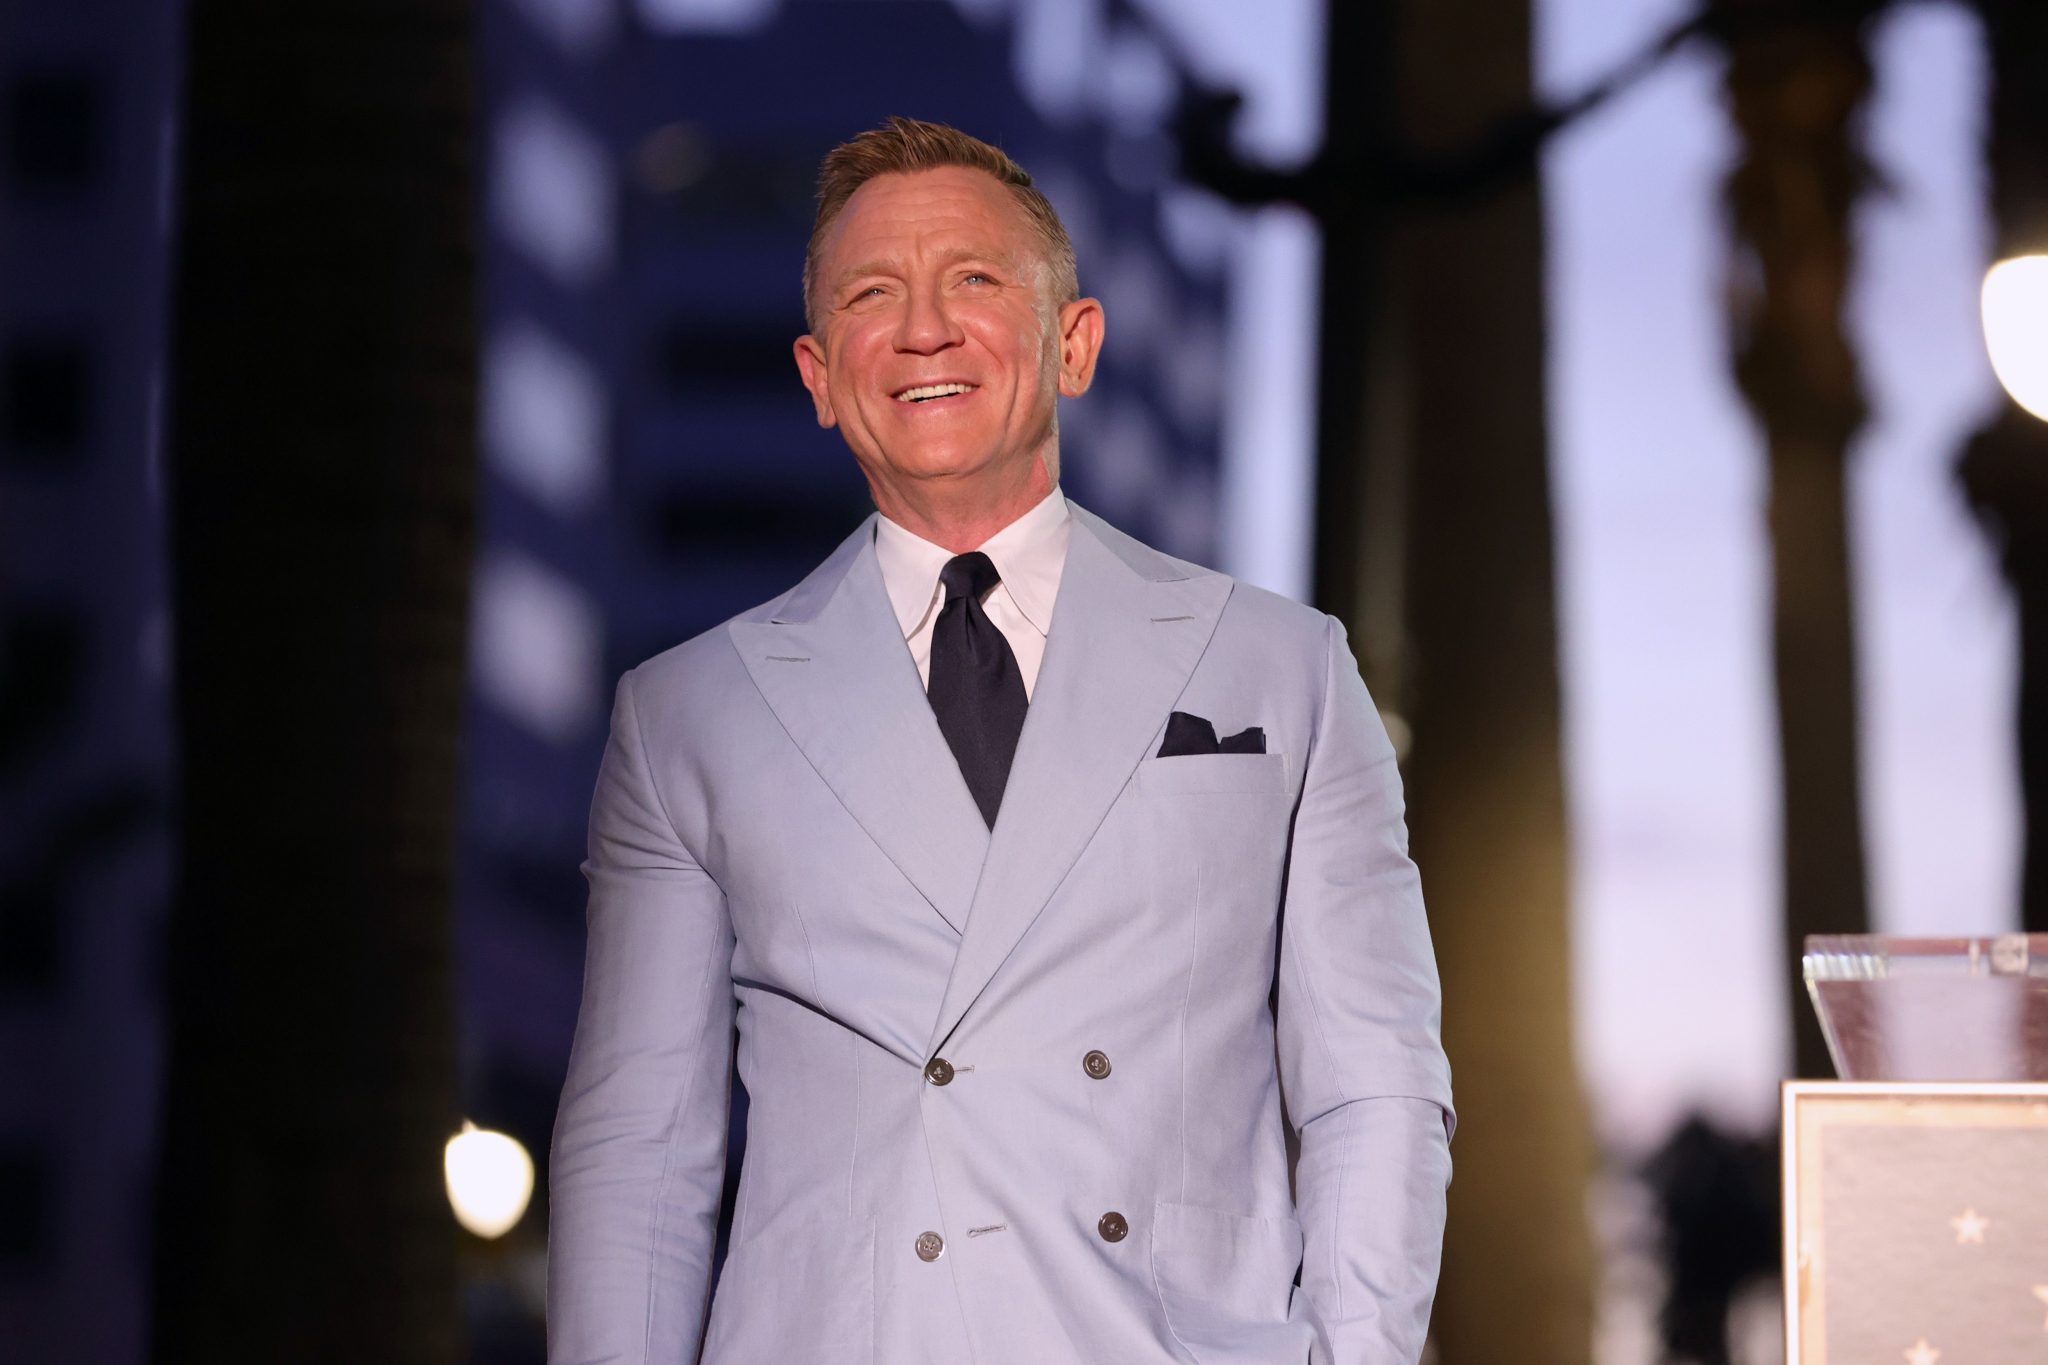 Daniel Craig says he often goes to gay bars to get away from aggressive men